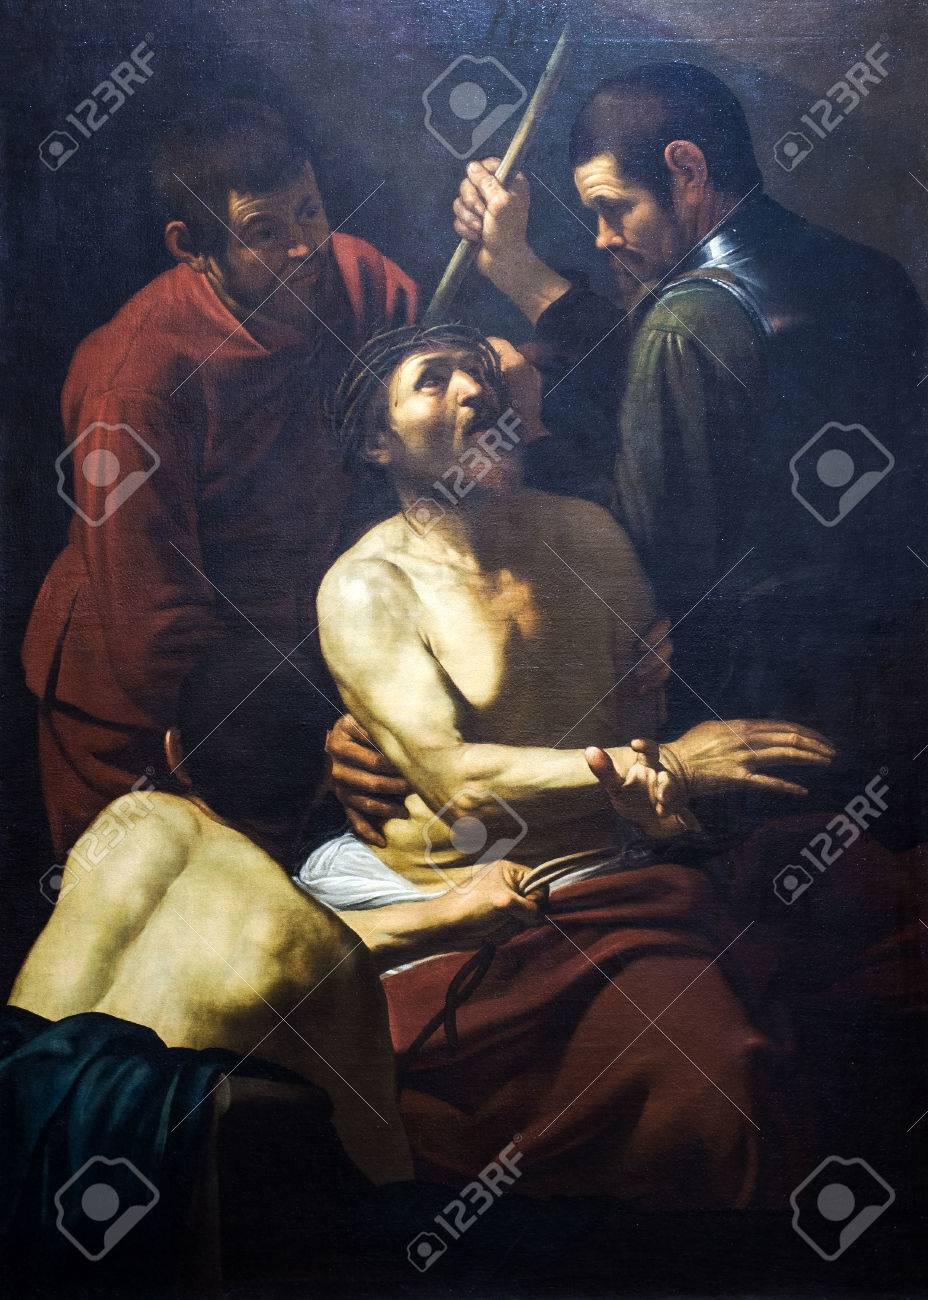 PALERMO, ITALY-JANUARY 02, 2016: The Crowning with Thorns is a painting by the Italian painter Michelangelo Merisi da Caravaggio exposed to the Mirto palace of Palermo. Banca Popolare di Vicenza collection - 51774890